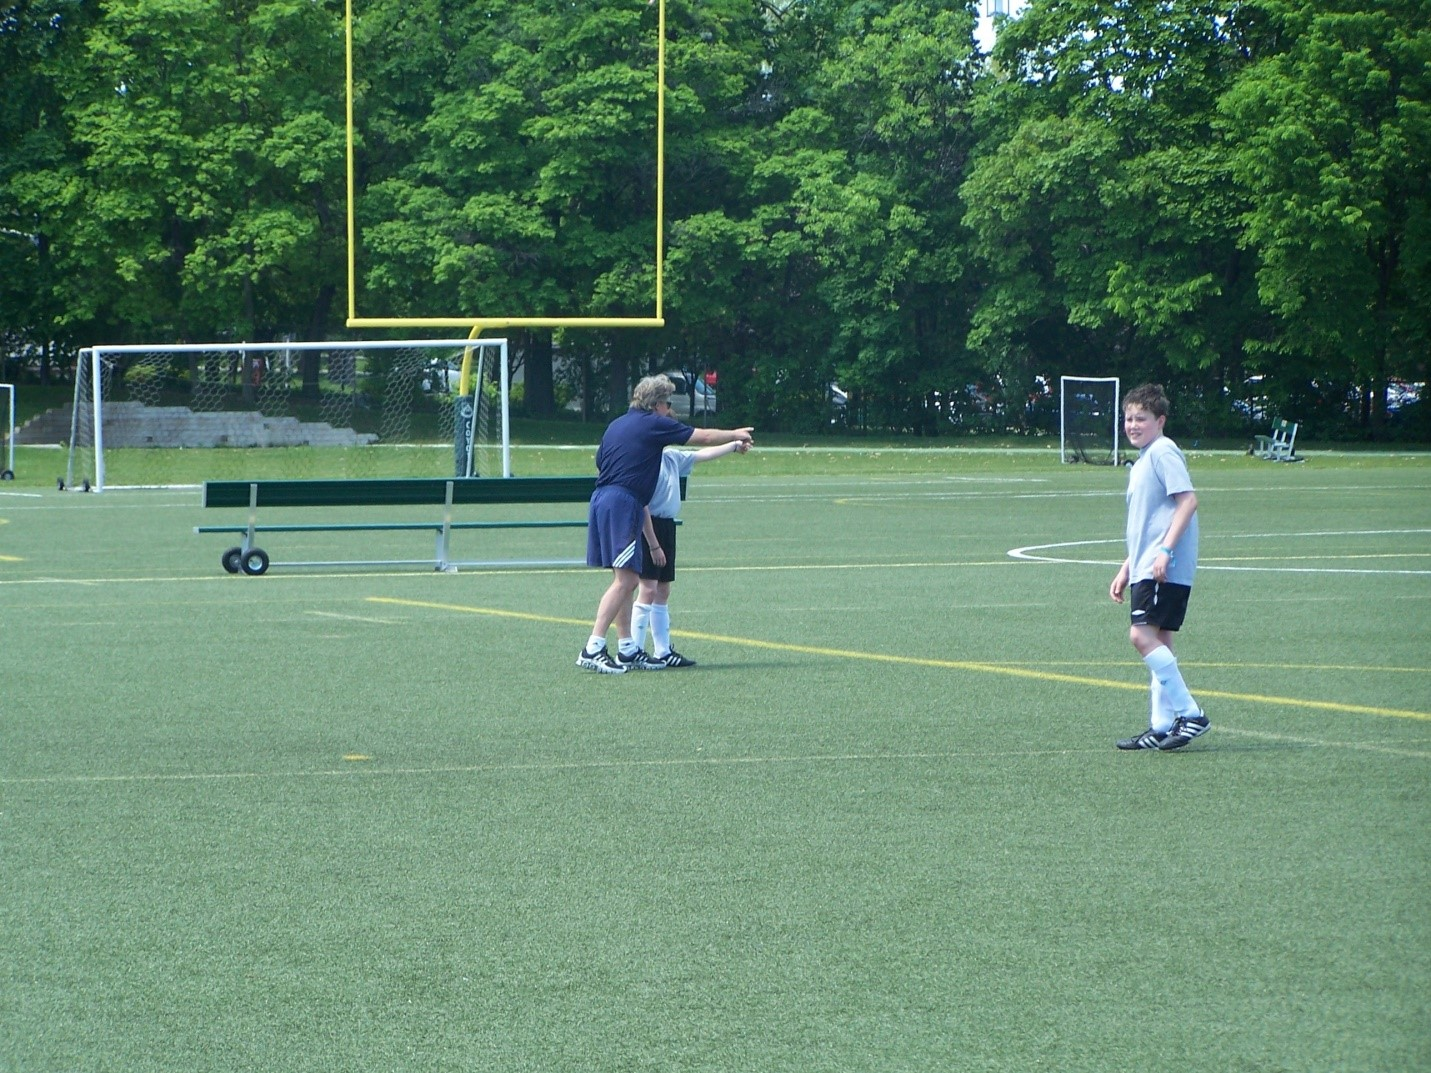 Soccer coaching tips -- off side & in-postion -- how to